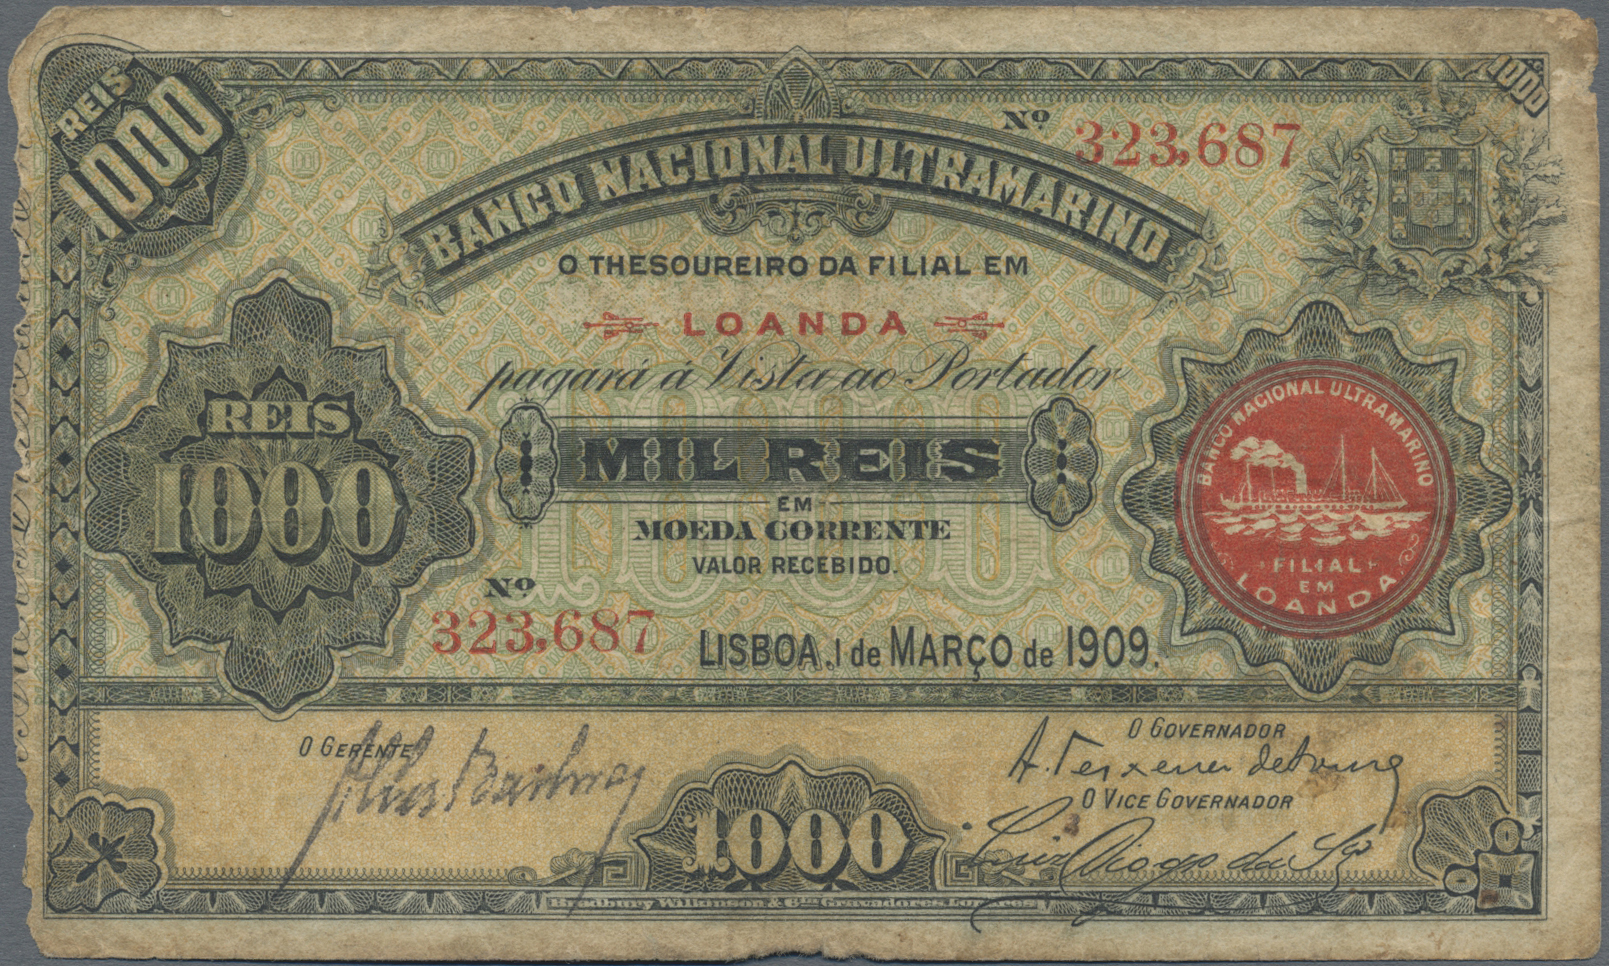 Lot 00012 - Angola | Banknoten  -  Auktionshaus Christoph Gärtner GmbH & Co. KG Sale #48 The Banknotes